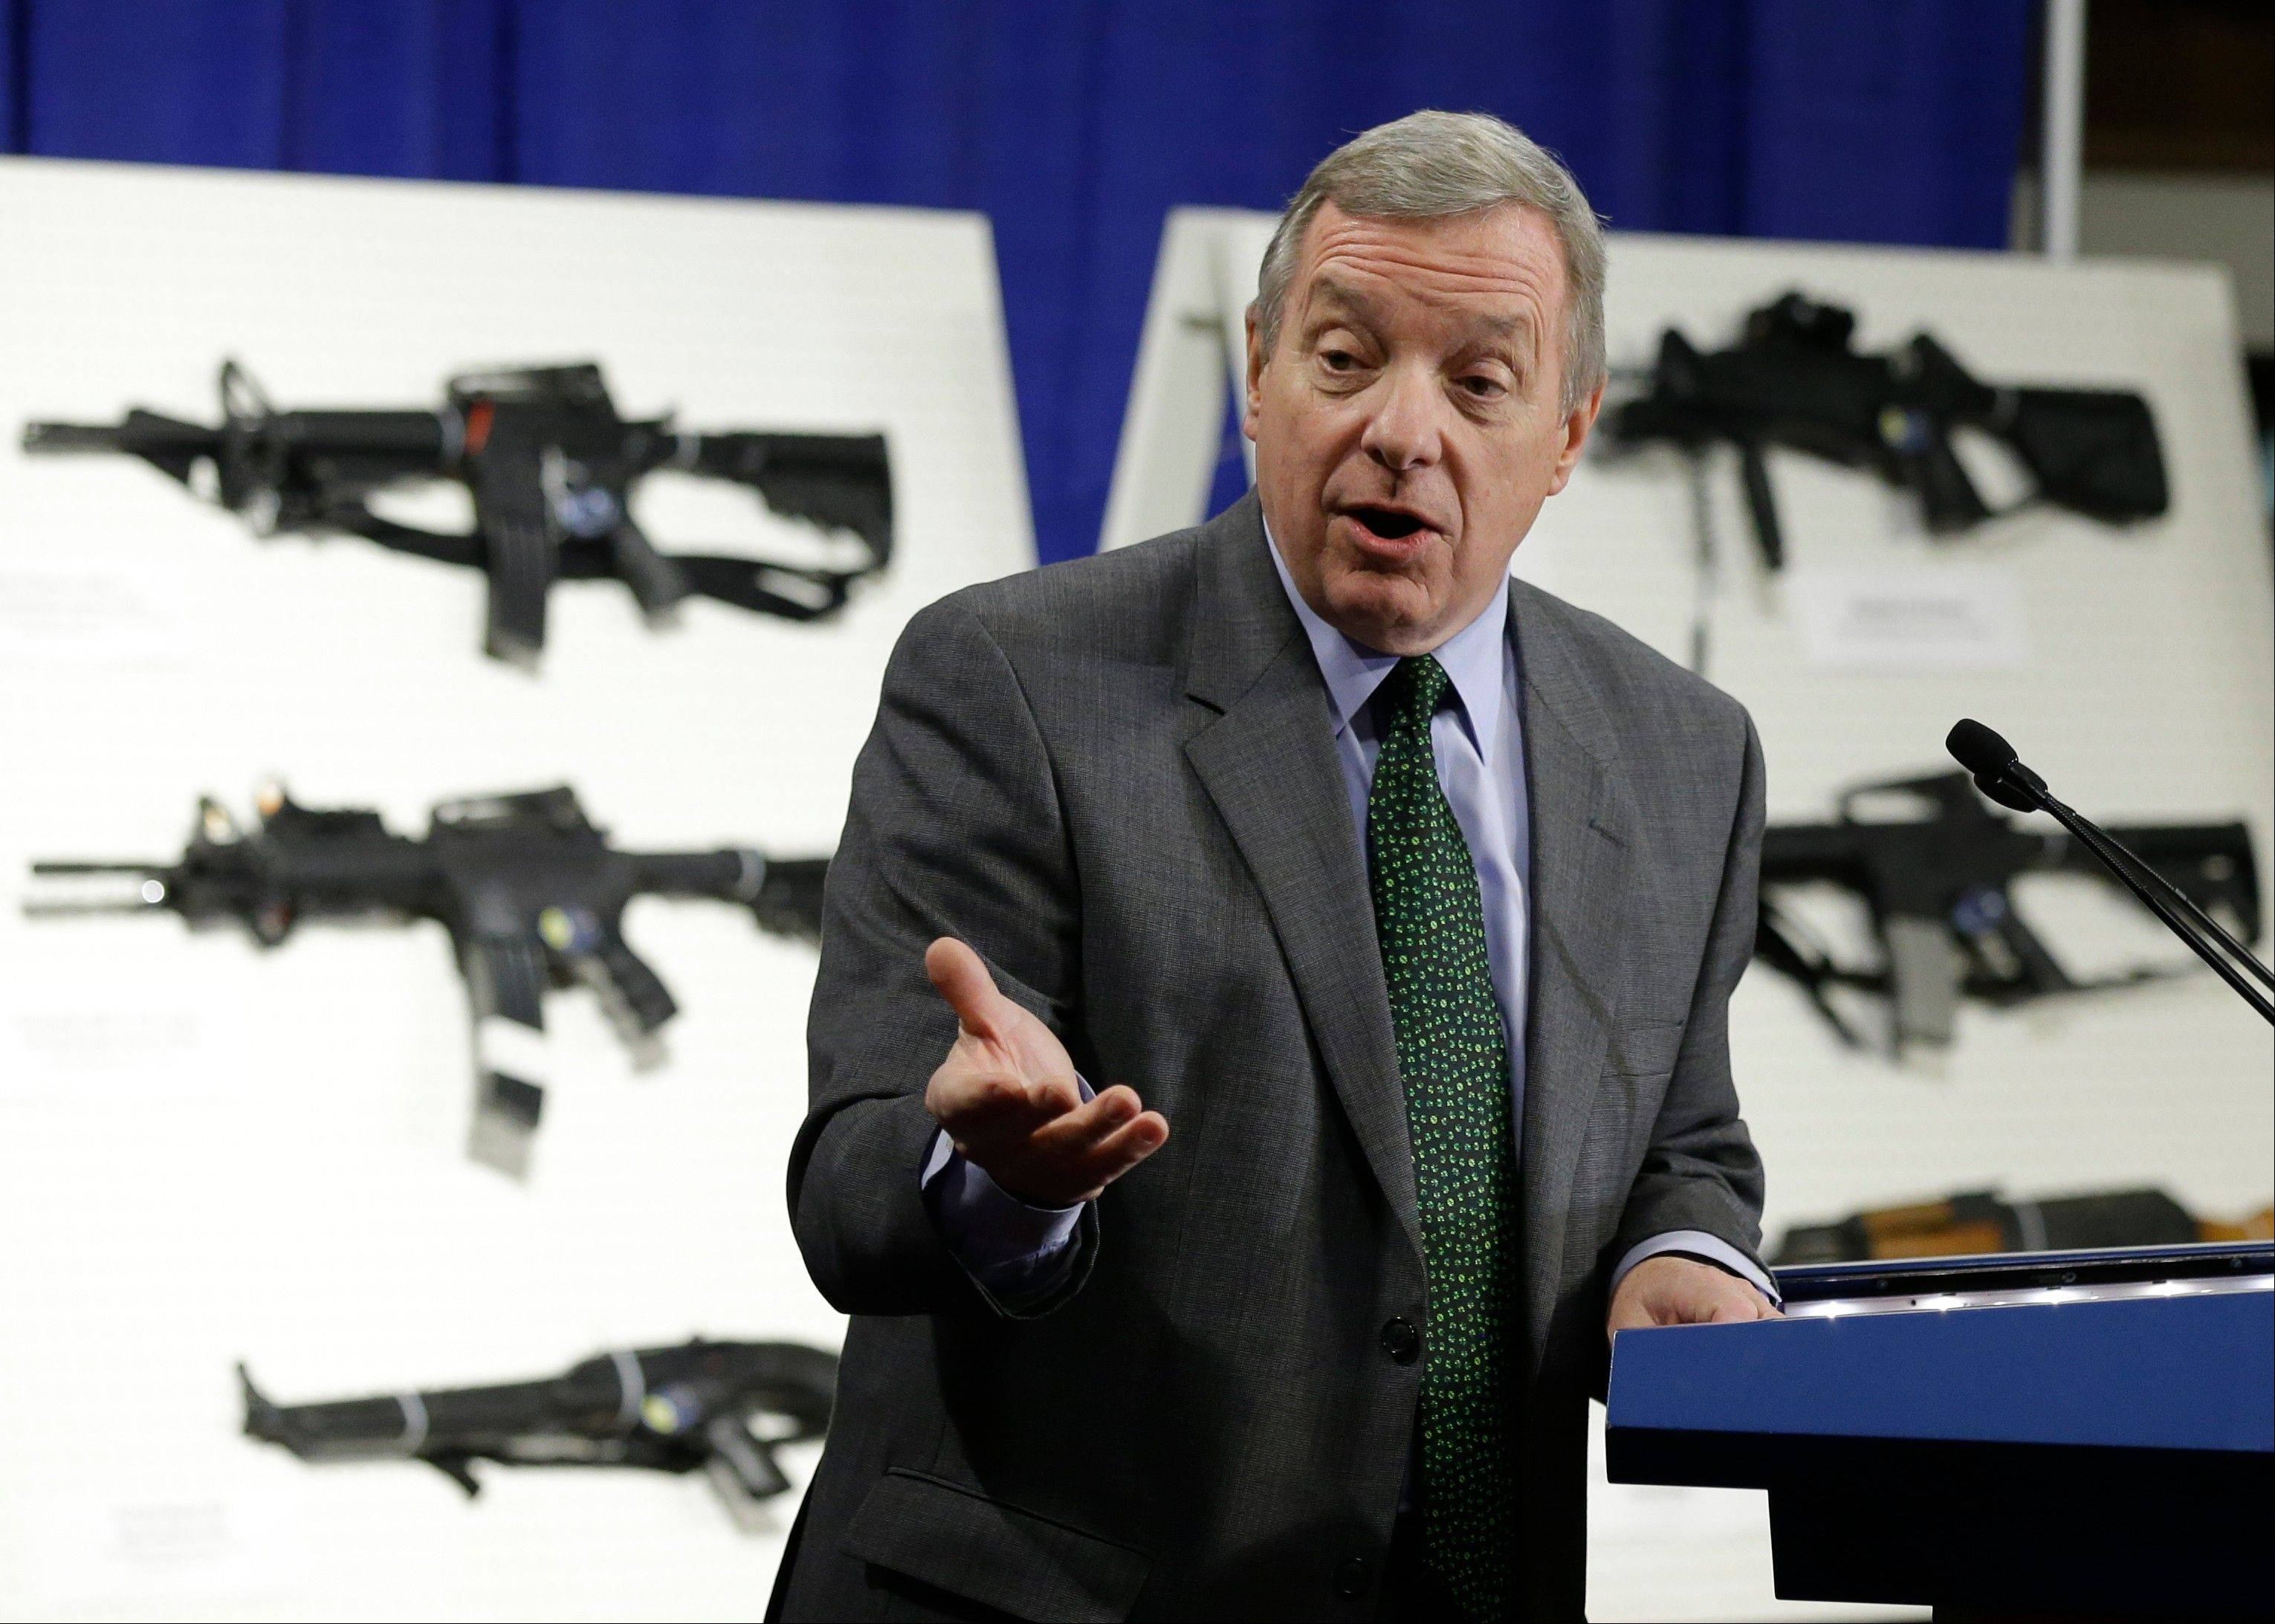 U.S. Sen. Dick Durbin speaks during a Thursday news conference with a coalition of members of Congress, mayors, law enforcement officers, gun safety organizations and other groups in Washington to introduce legislation on assault weapons and high-capacity ammunition-feeding devices.